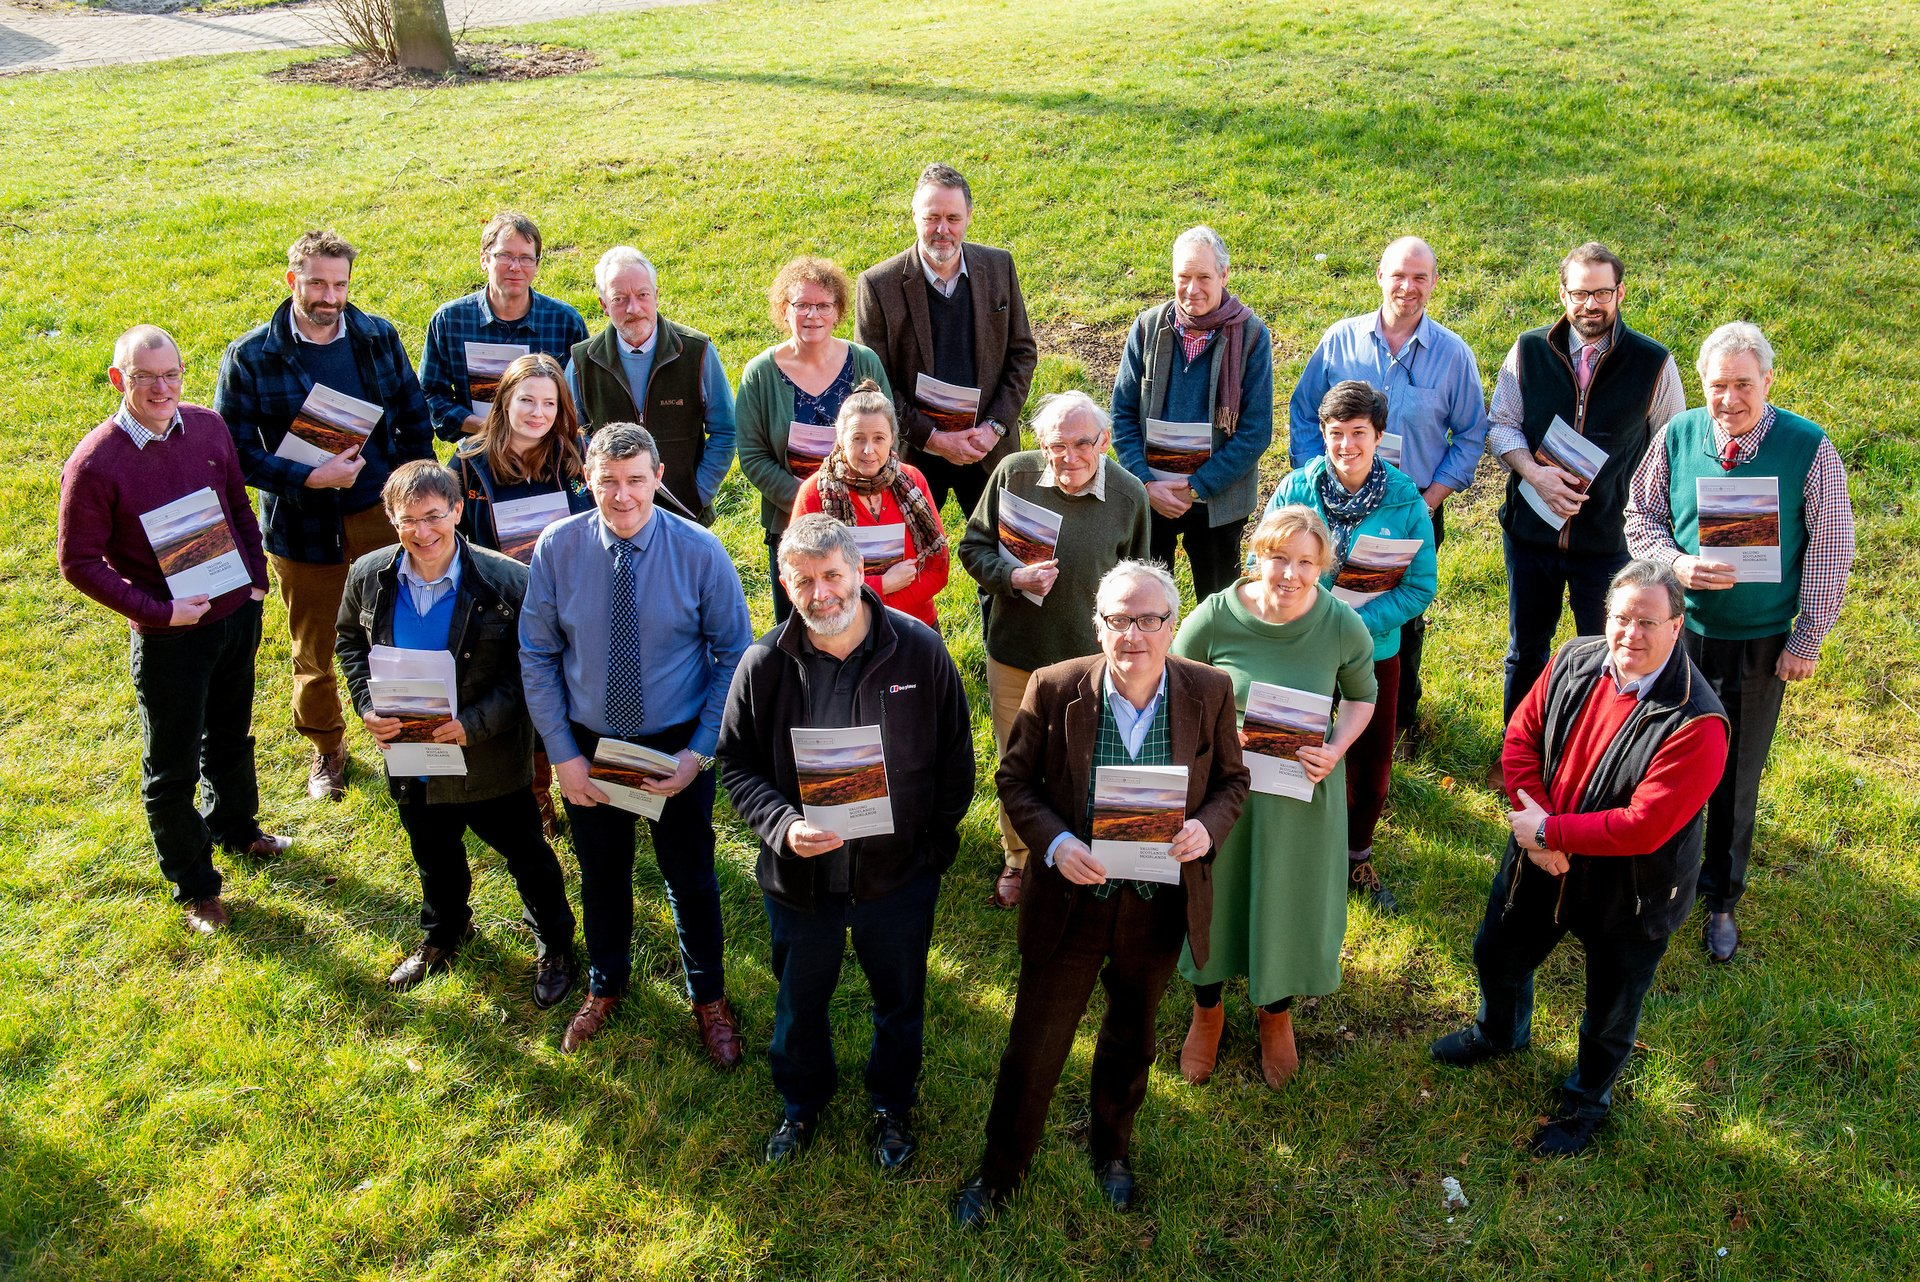 Members of Scotland's Moorland Forum launch the Valuing Scotland's Moorlands Report - 6 March, 2020